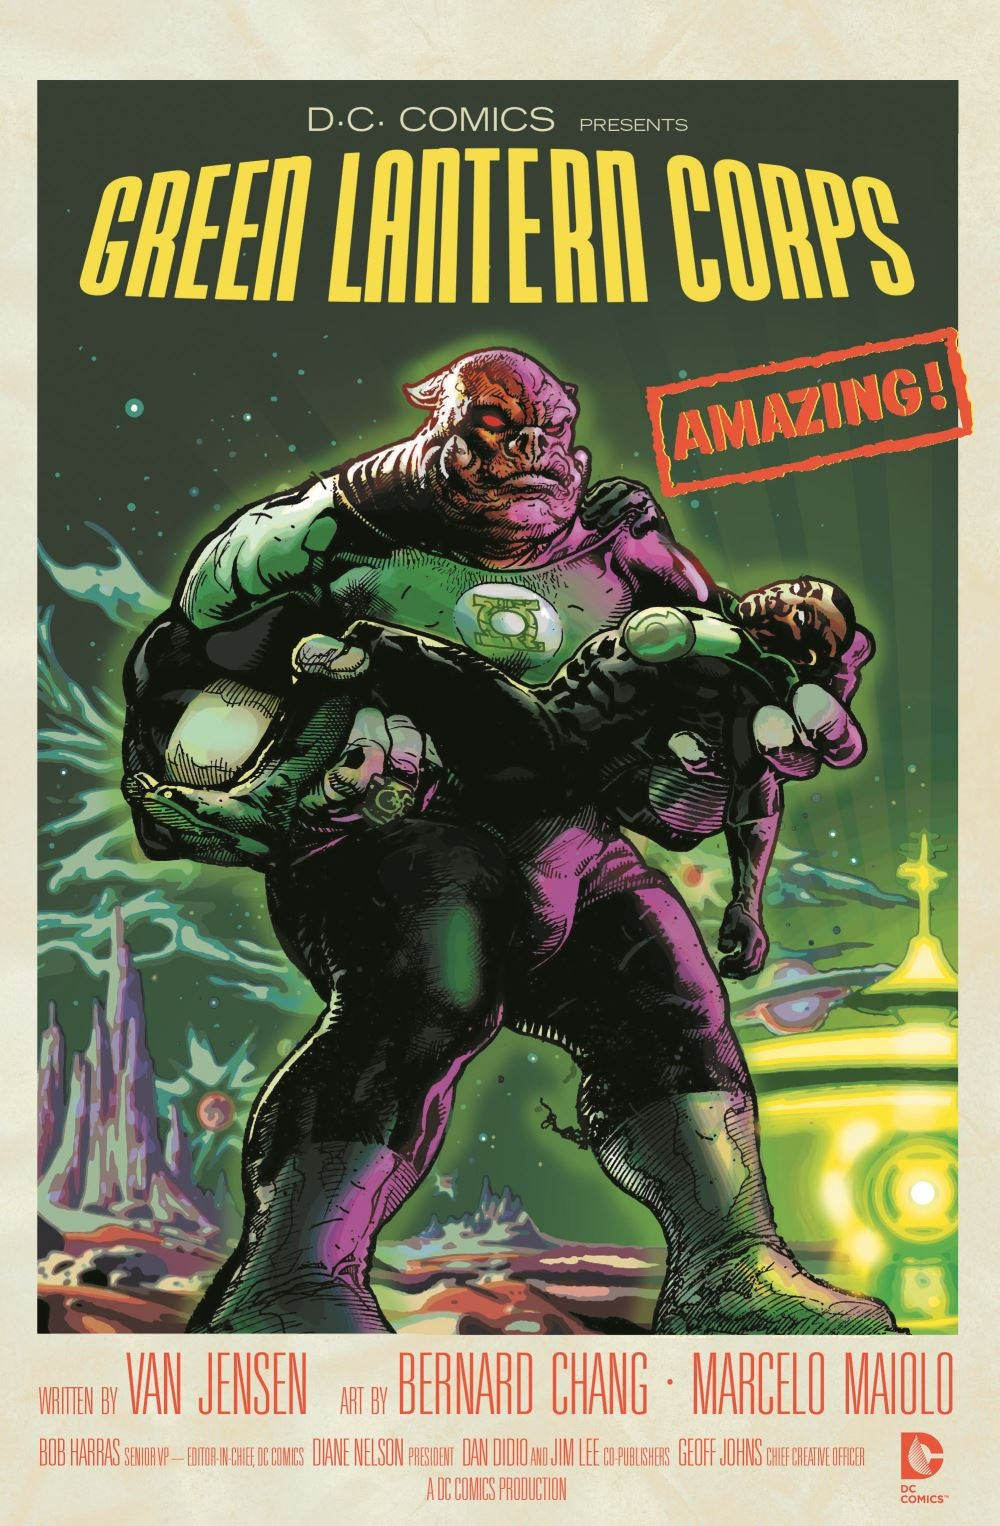 Green lantern corps comic cover - photo#3